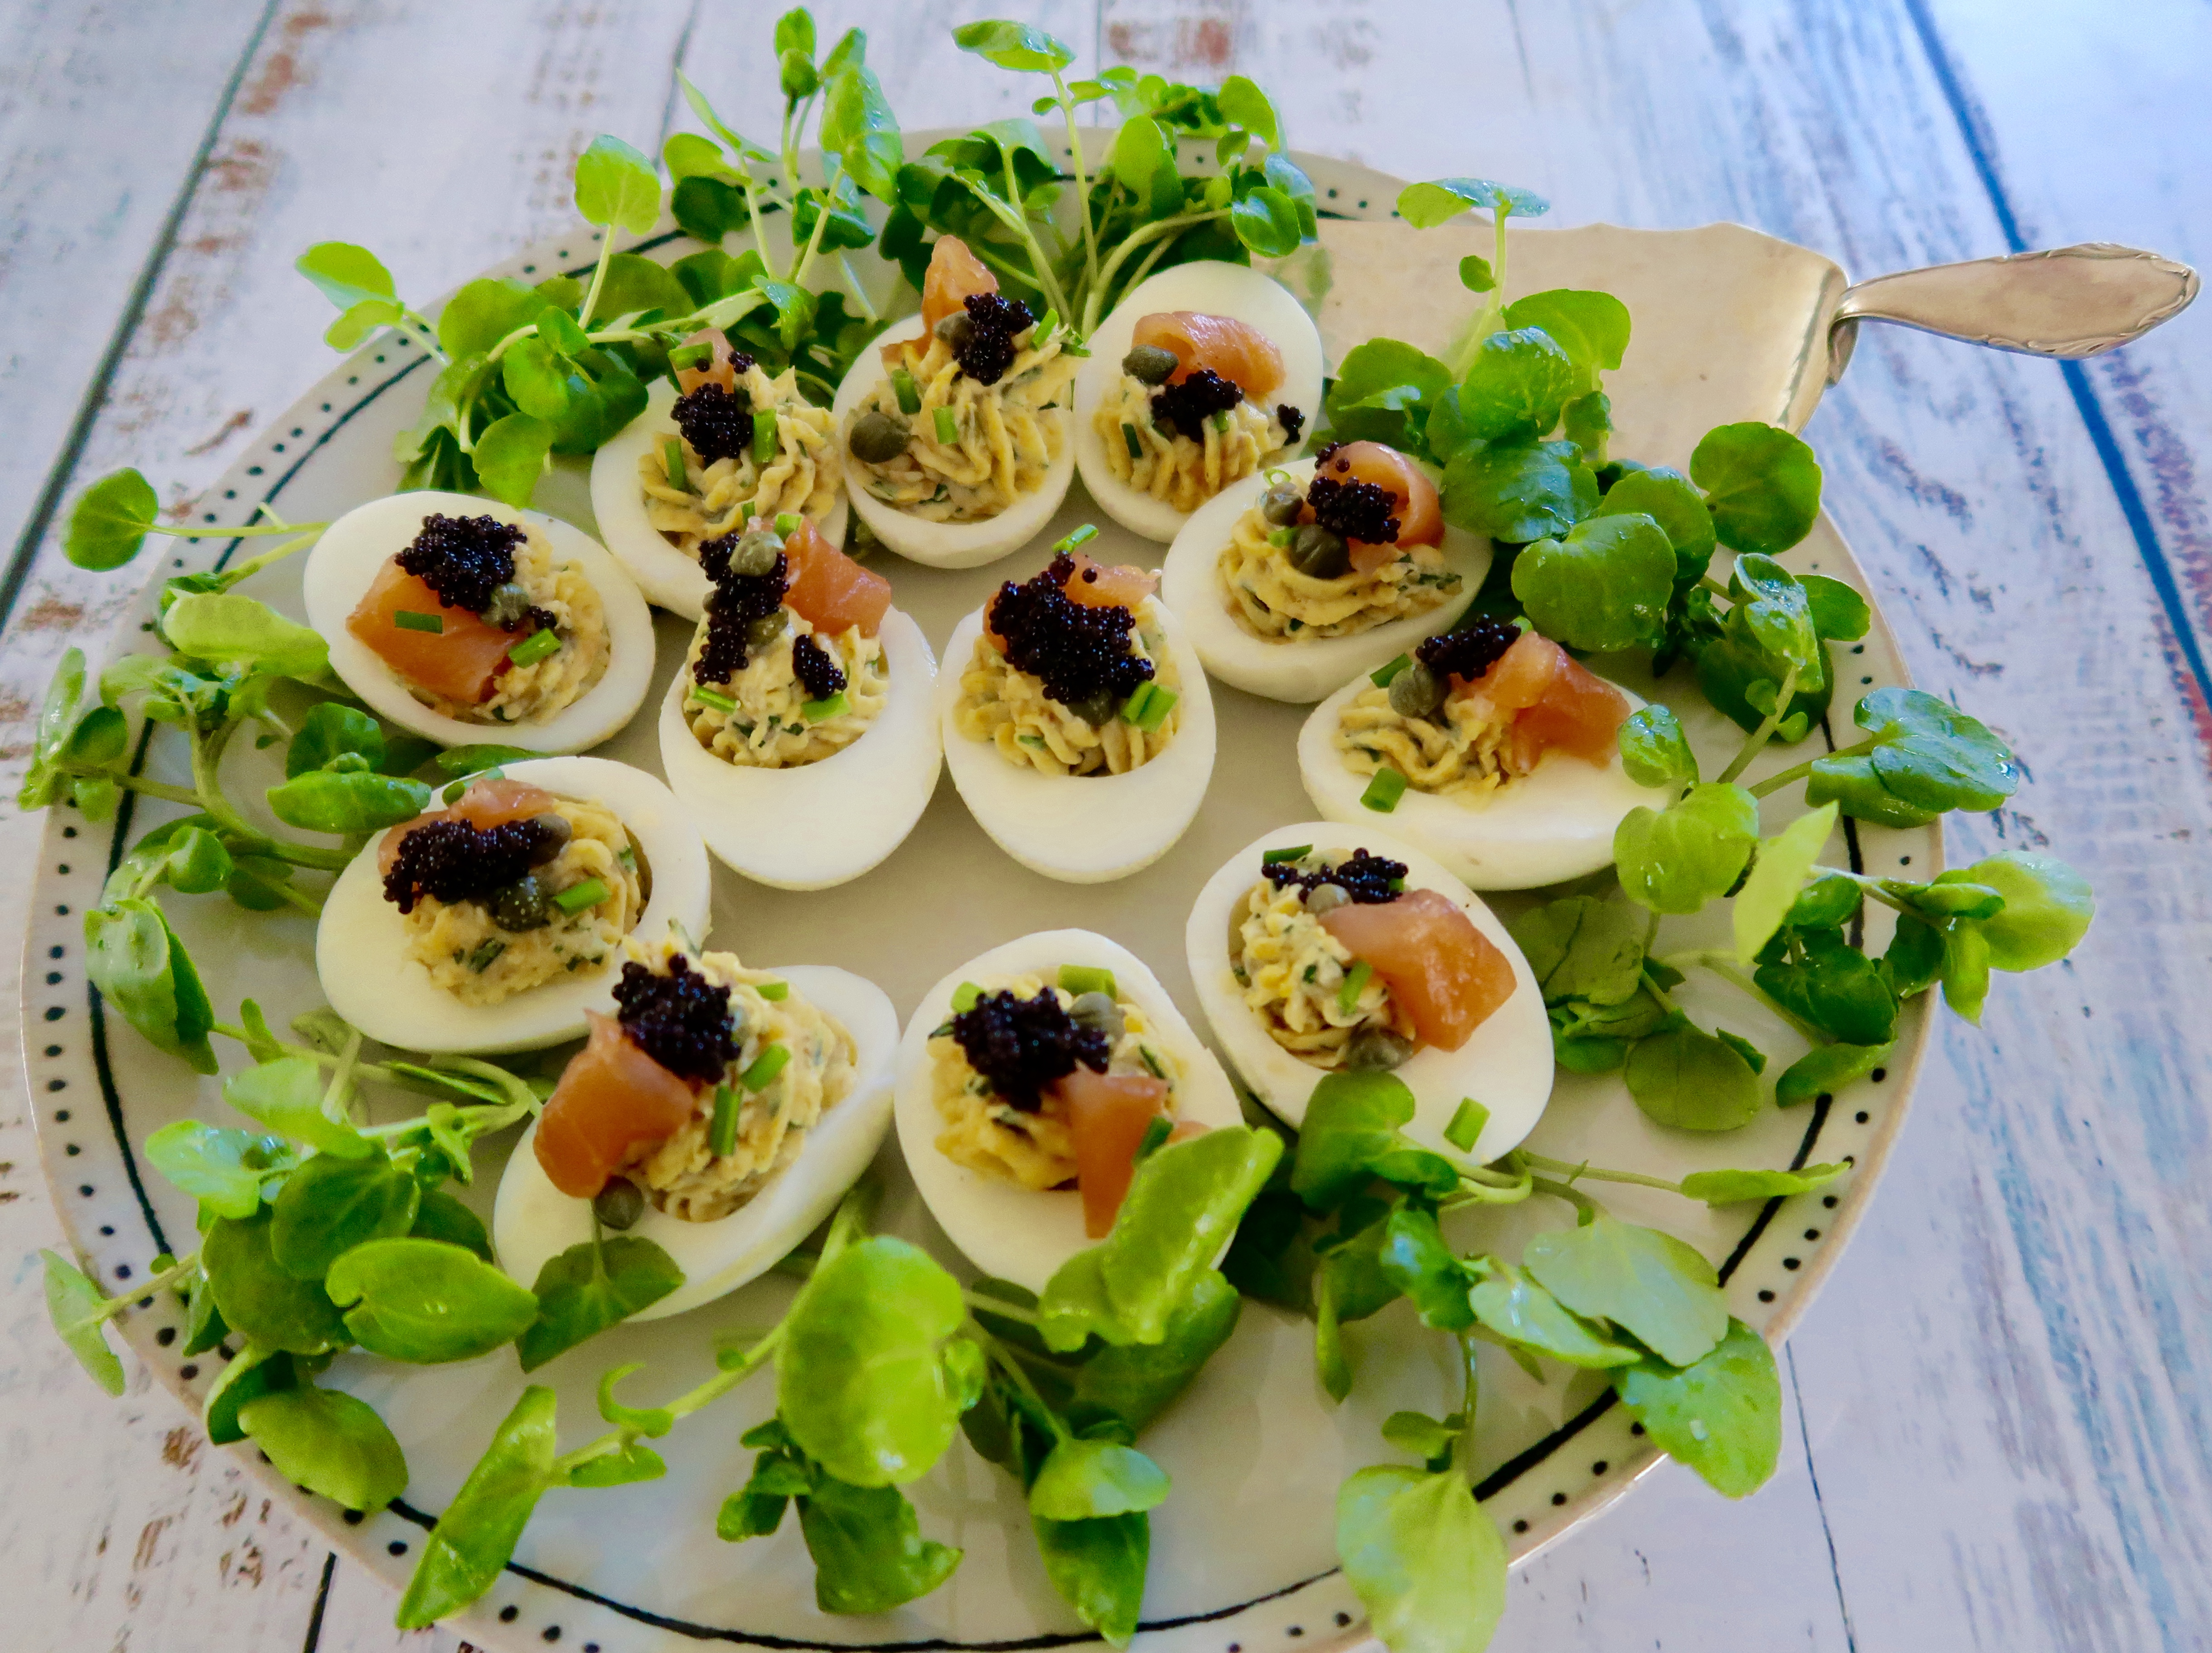 devilled eggs with smoked salmon served on a white plate with black dots on the border and watercress garnish